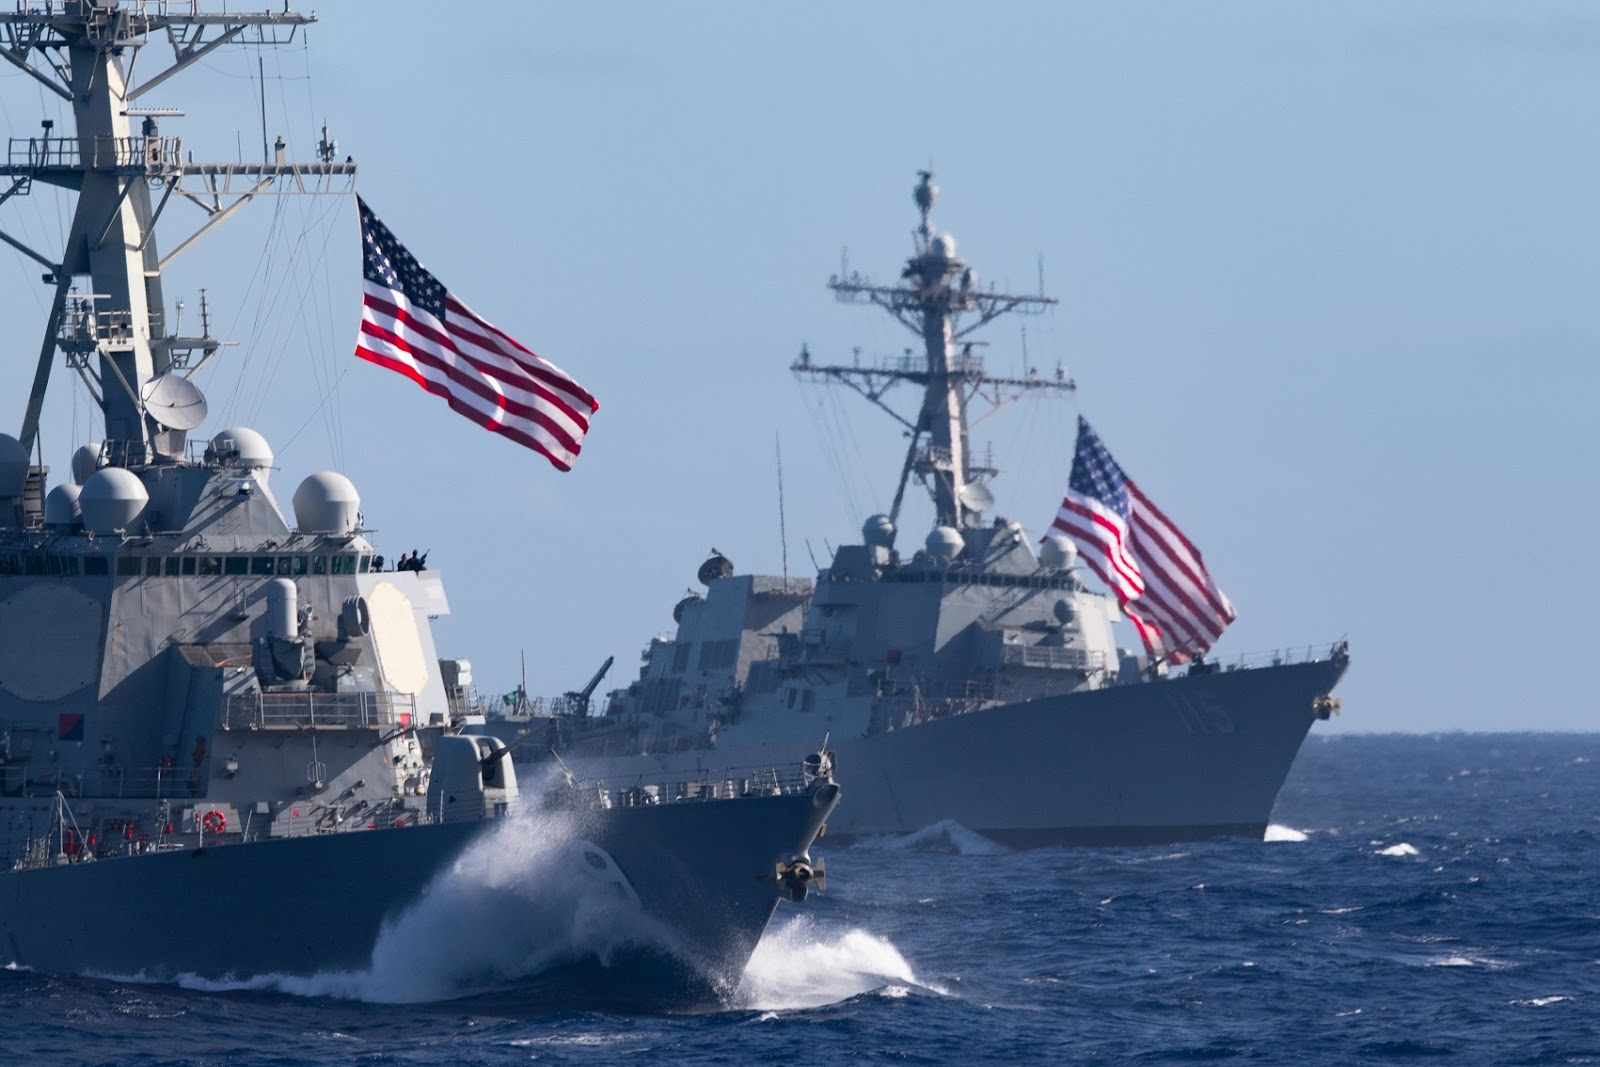 Theodore Roosevelt Carrier Strike Group transits the Pacific Ocean